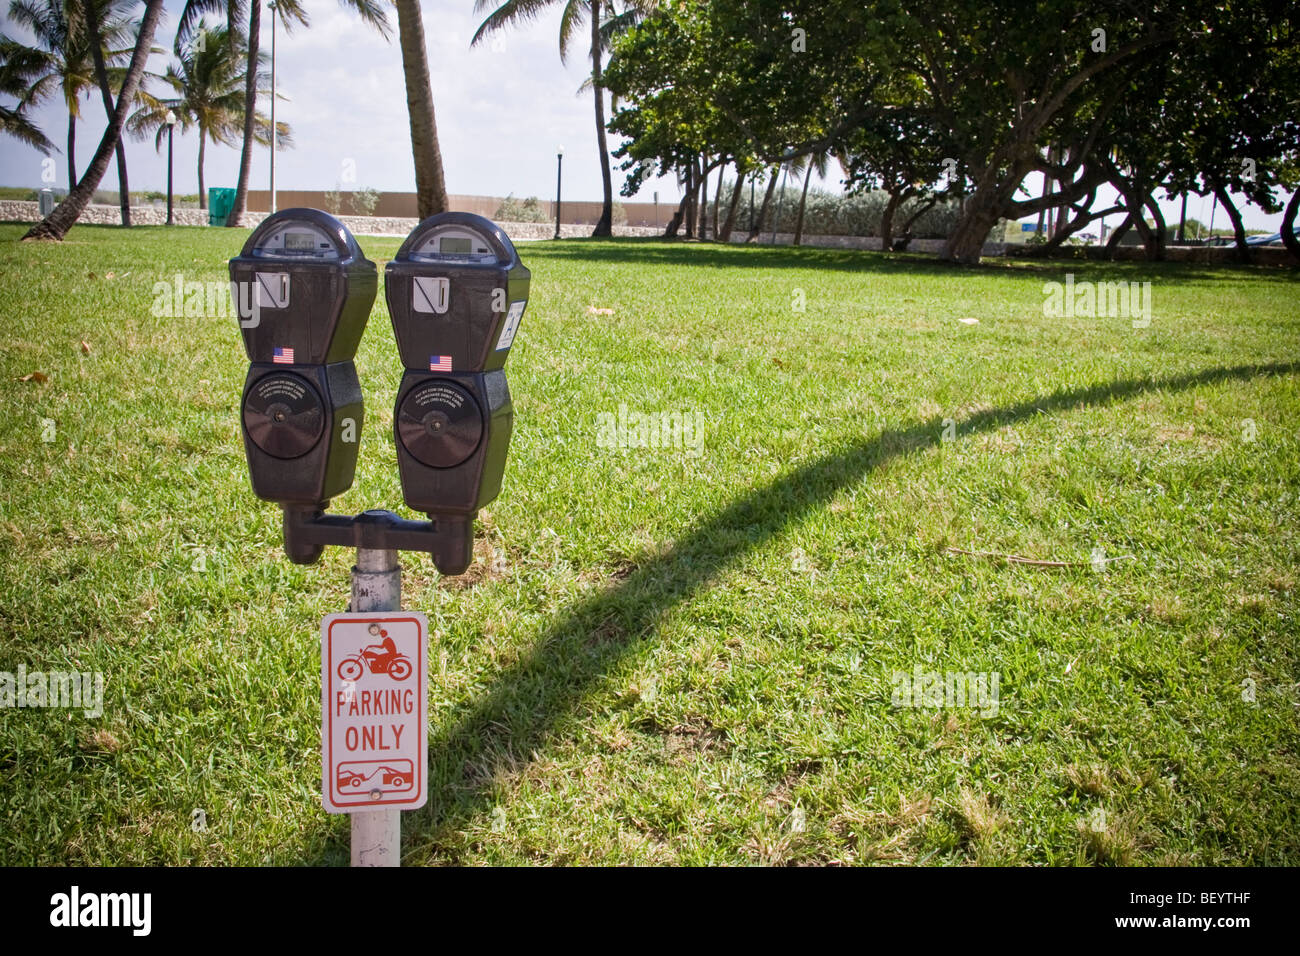 Parking meter with interesting shadow cast by palm tree. Ocean Drive, Miami south beach Florida - Stock Image